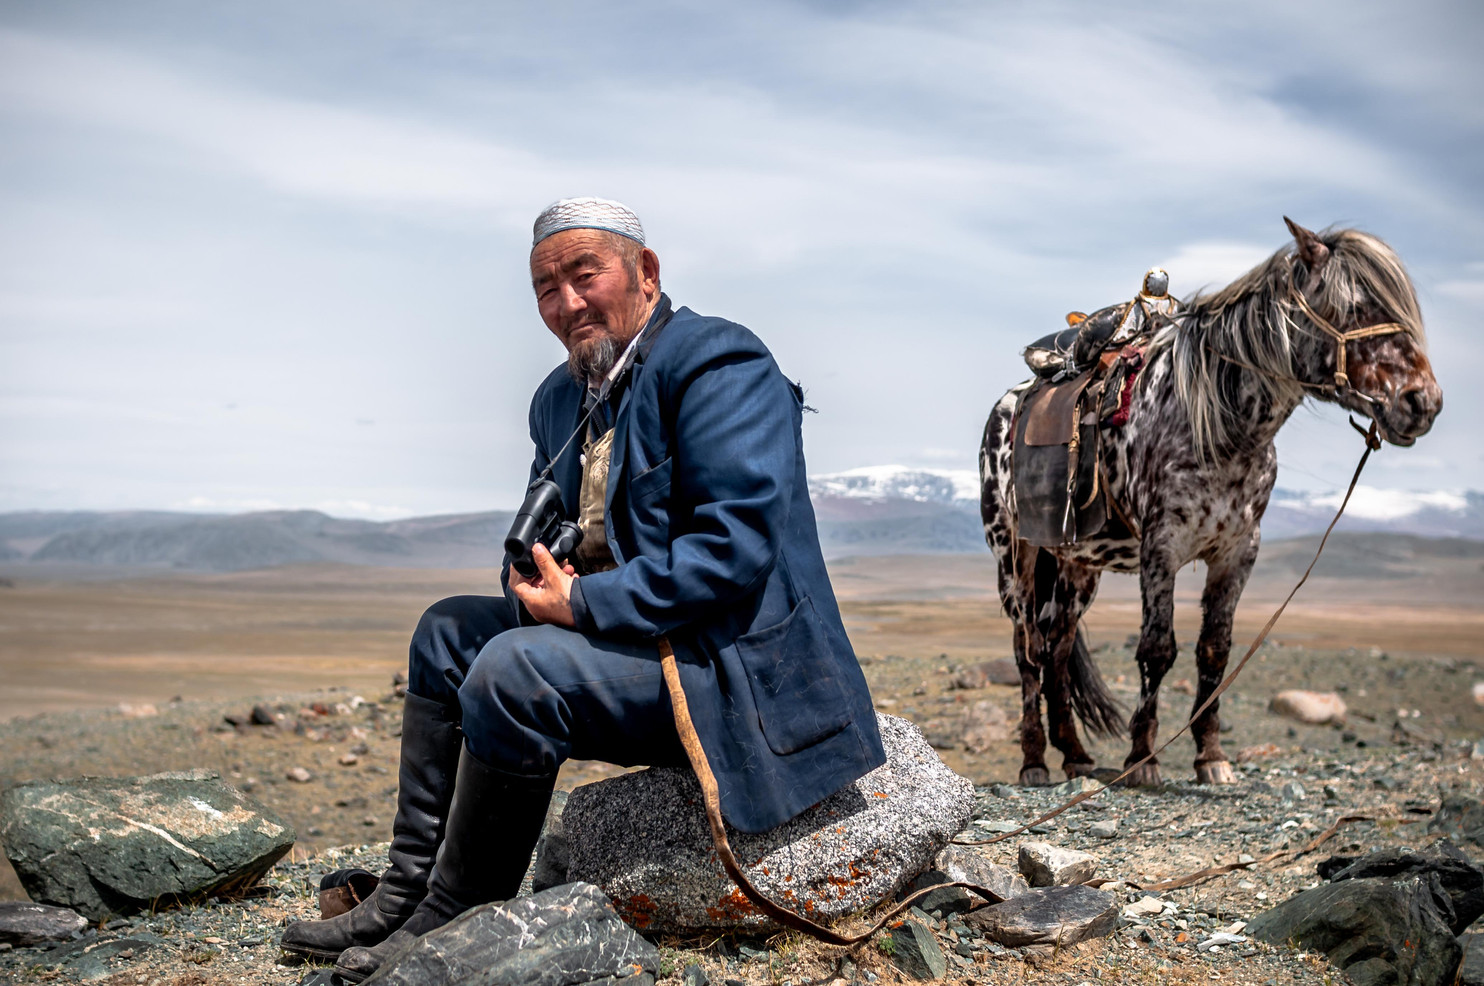 65 year old Saylau, Esen's father, sits with his horse on the lookout for their herd of goats and sheep. Saylau passed the ancient tradition down to his 5 sons.